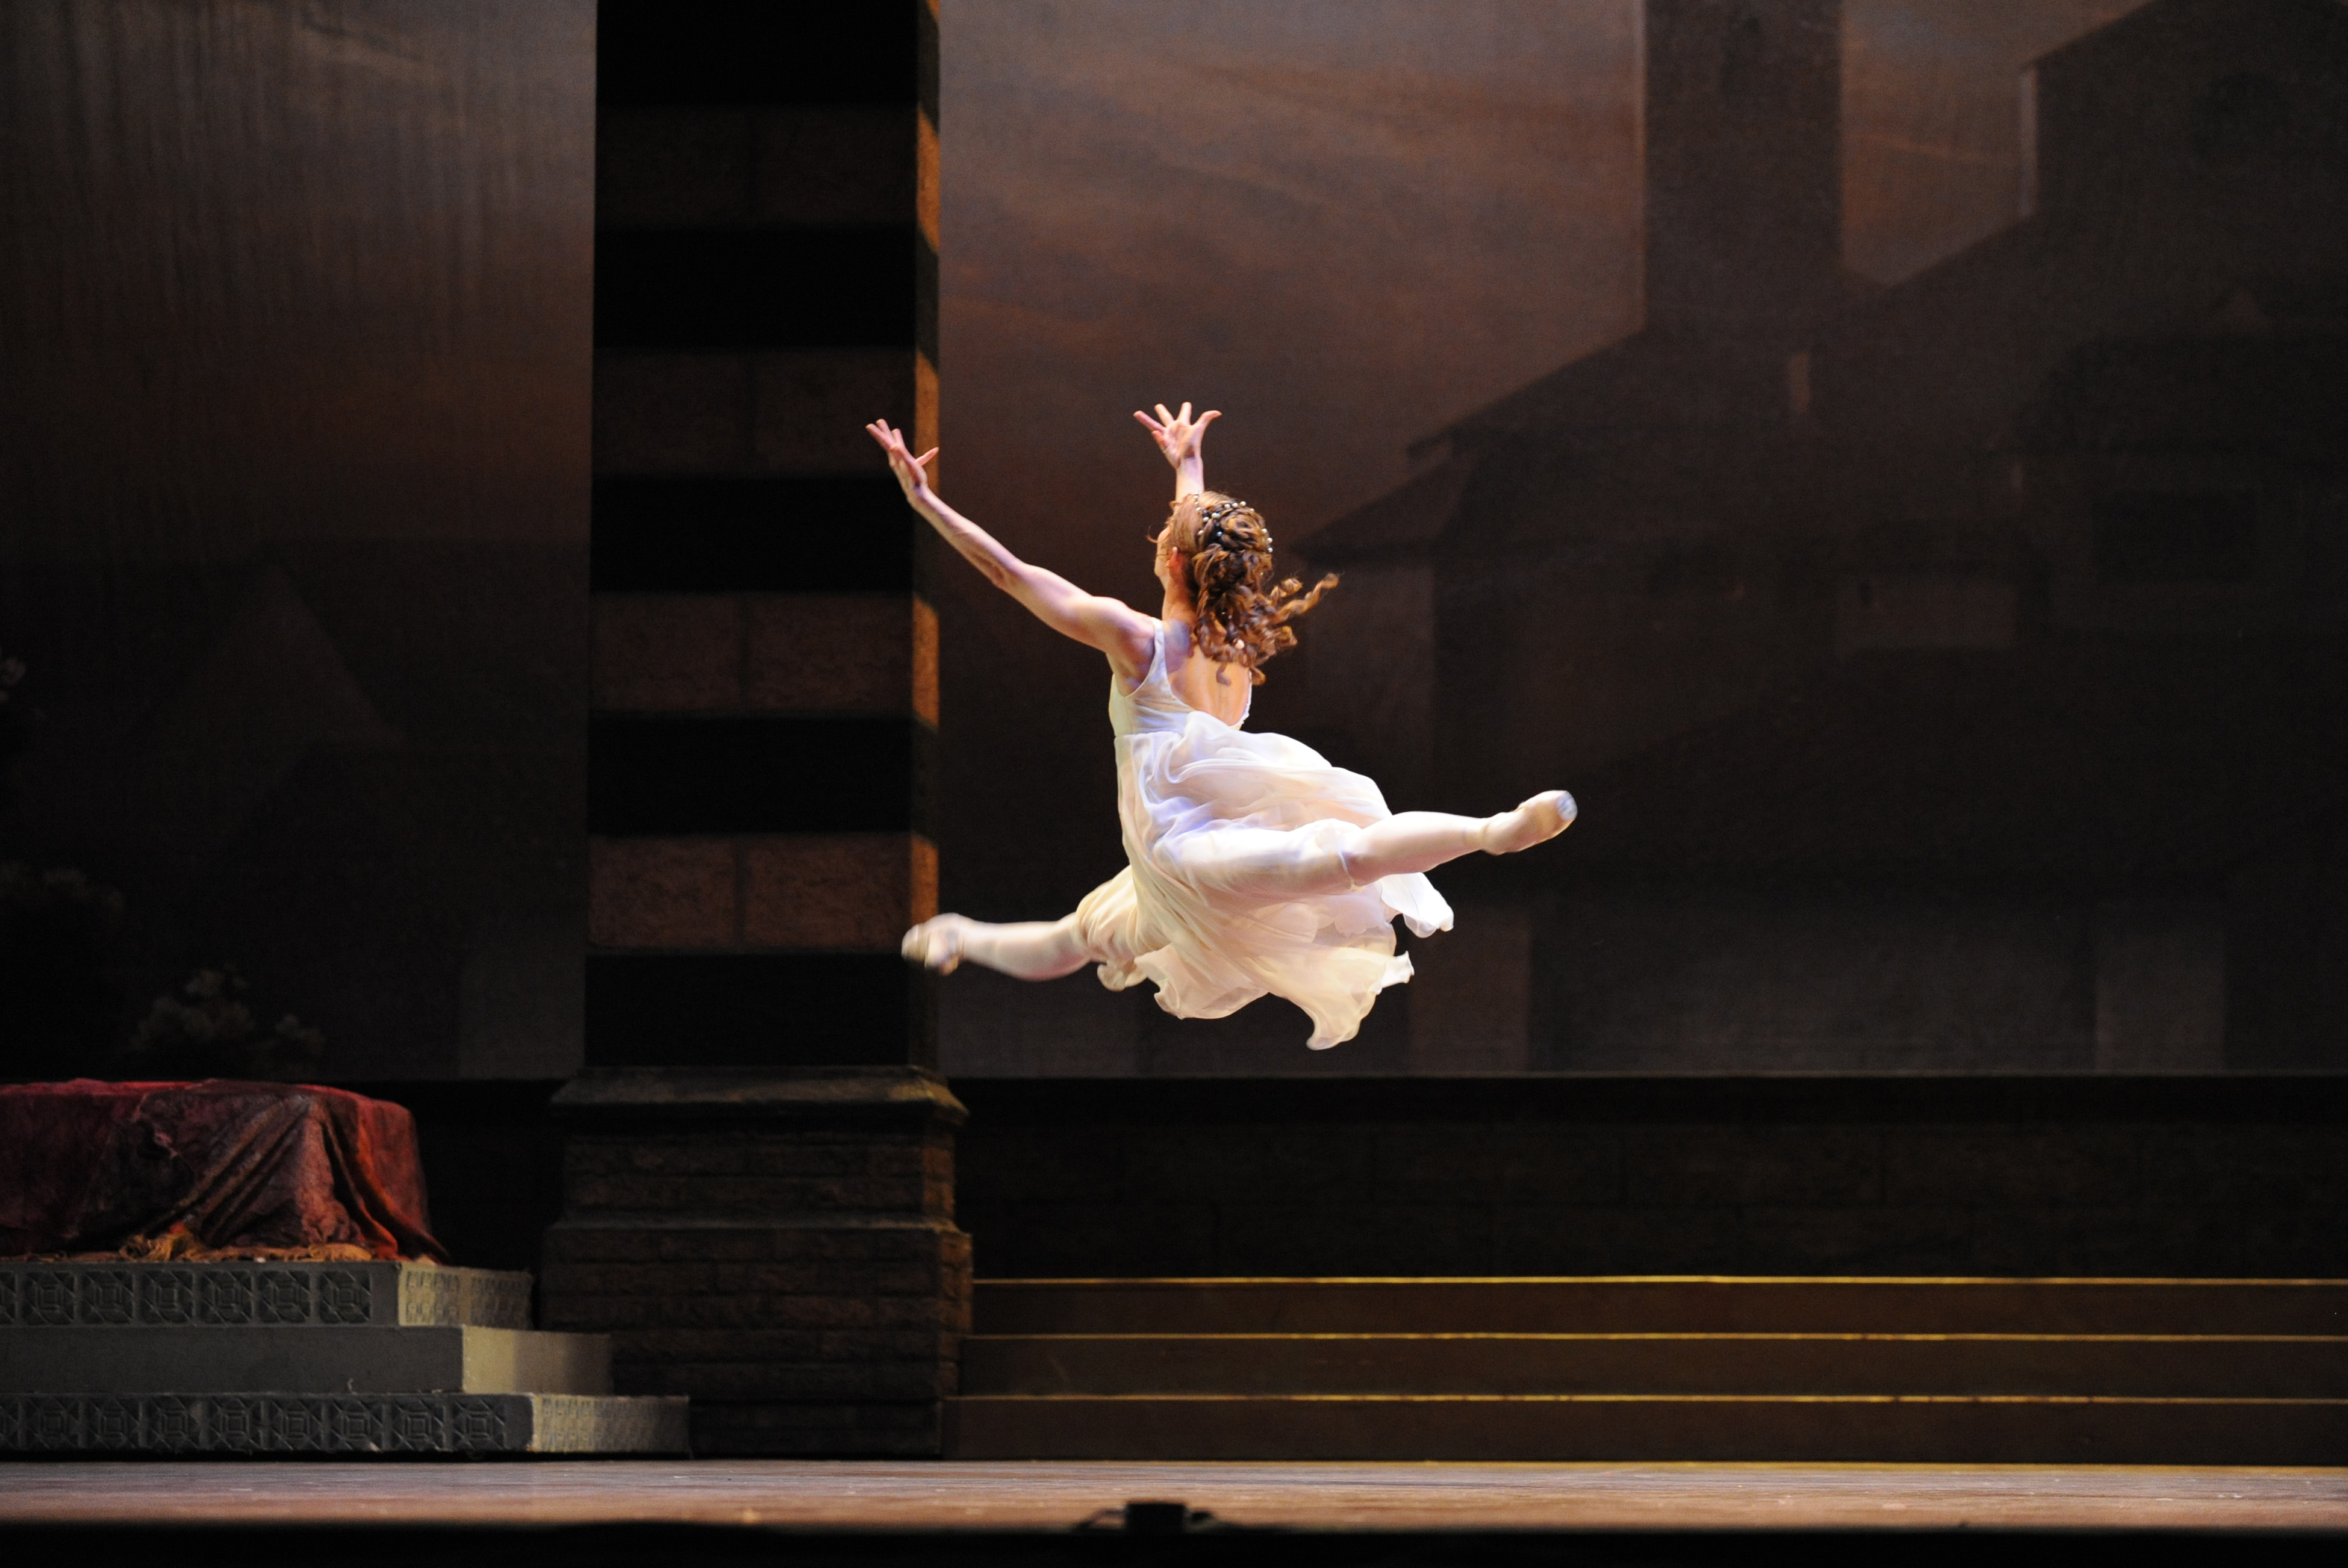 a ballet dancer jetes across the stage